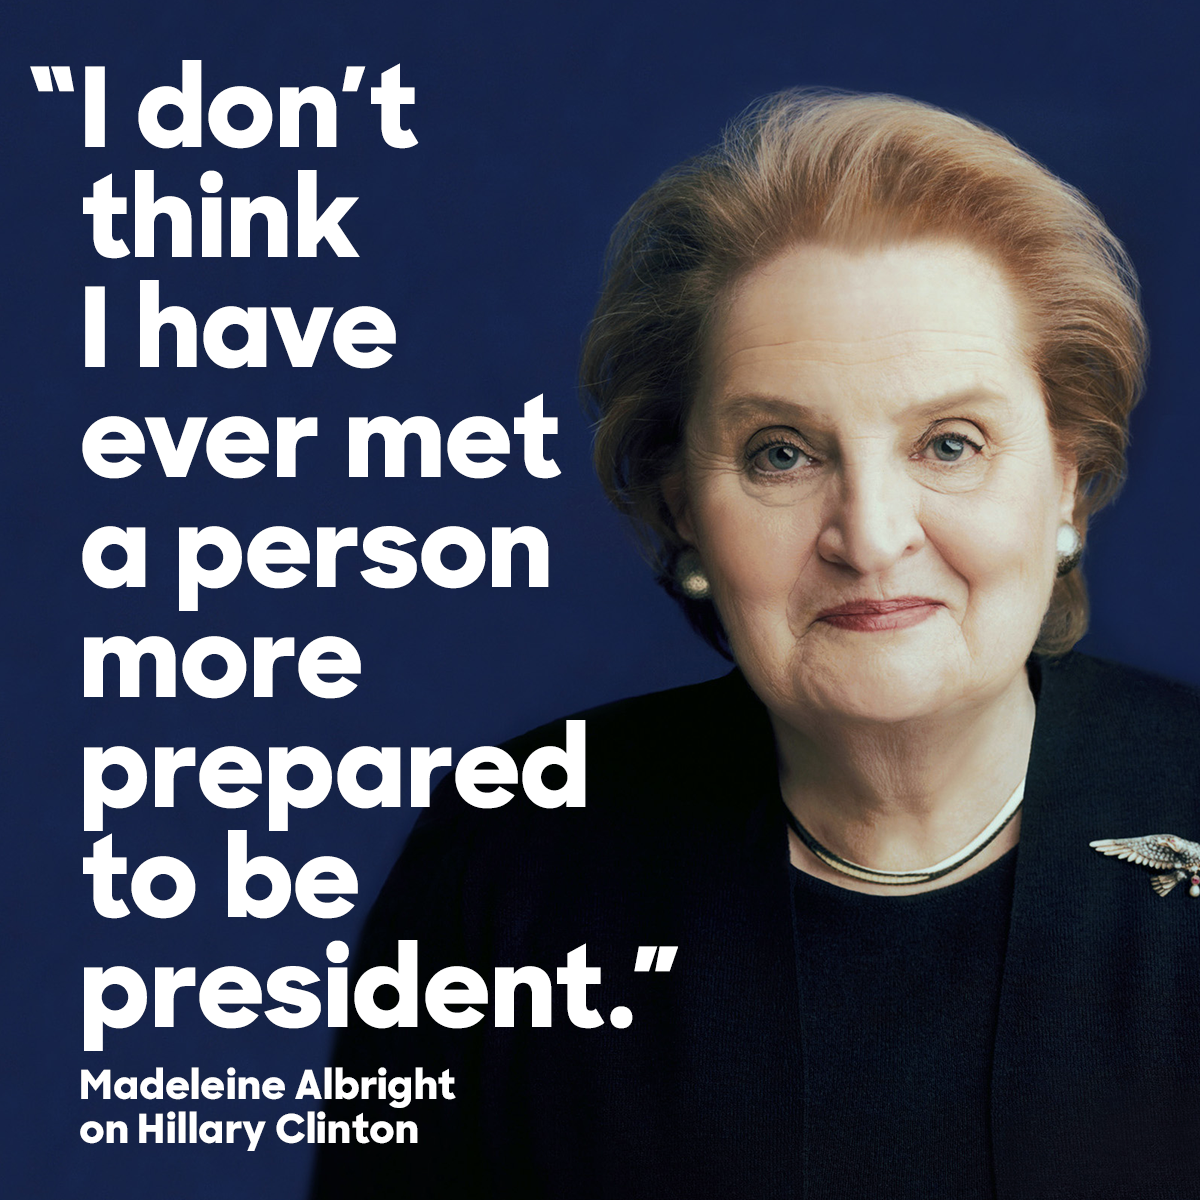 Albright-quote-hrc-fb-090716.png